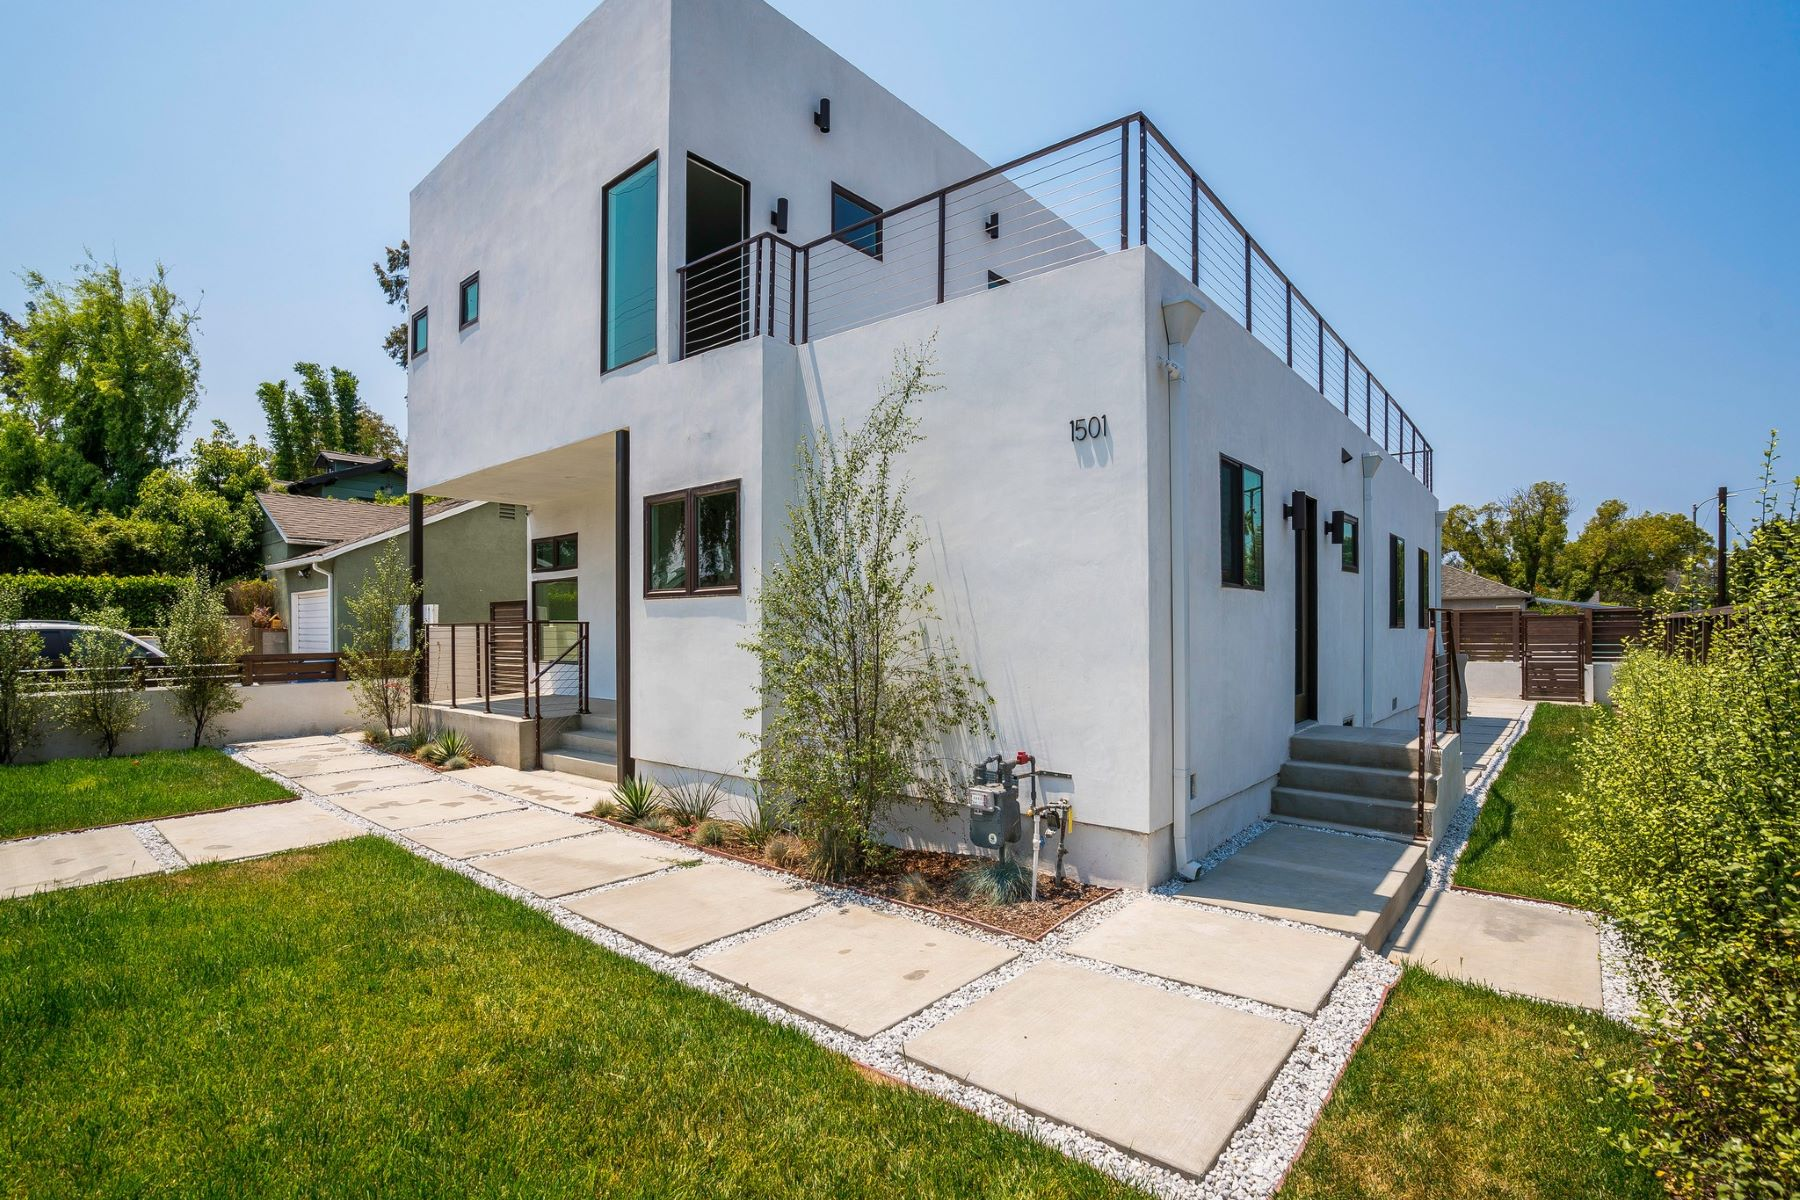 Single Family Home for Sale at 1501 Walgrove Ave Venice, California 90066 United States